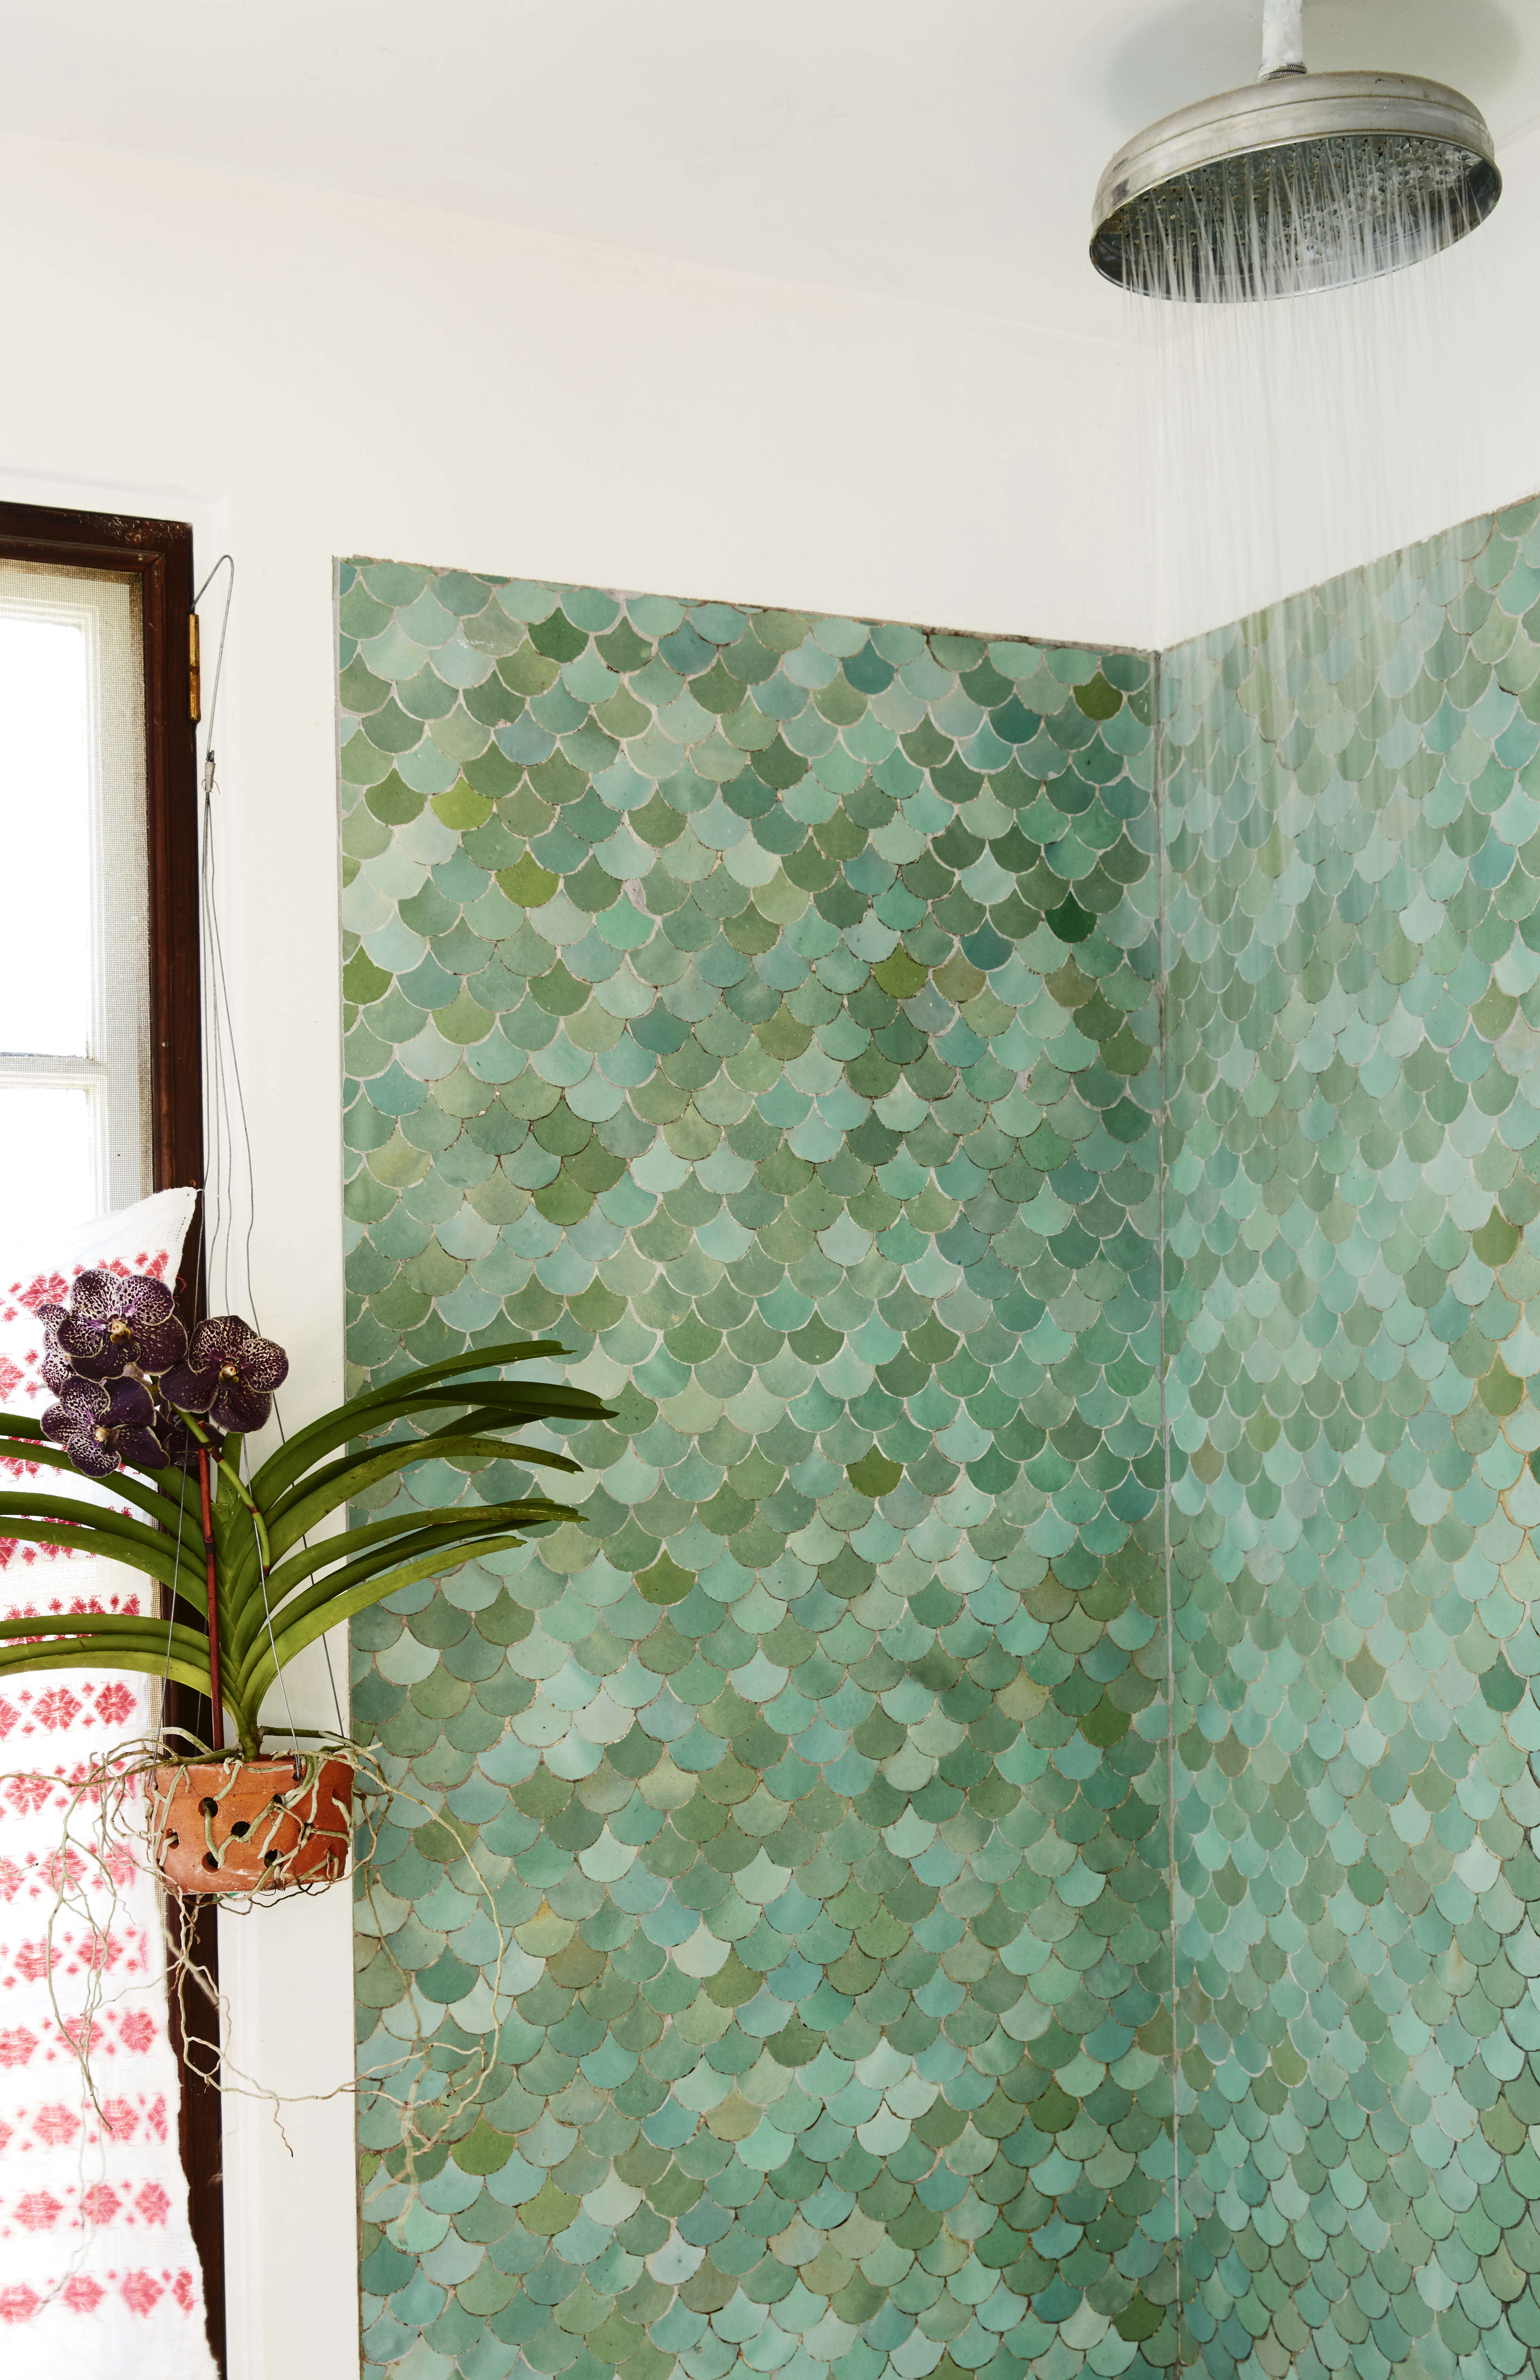 Moroccan glazed fish-scale tile and a Vanda orchid in the downstairs bath.